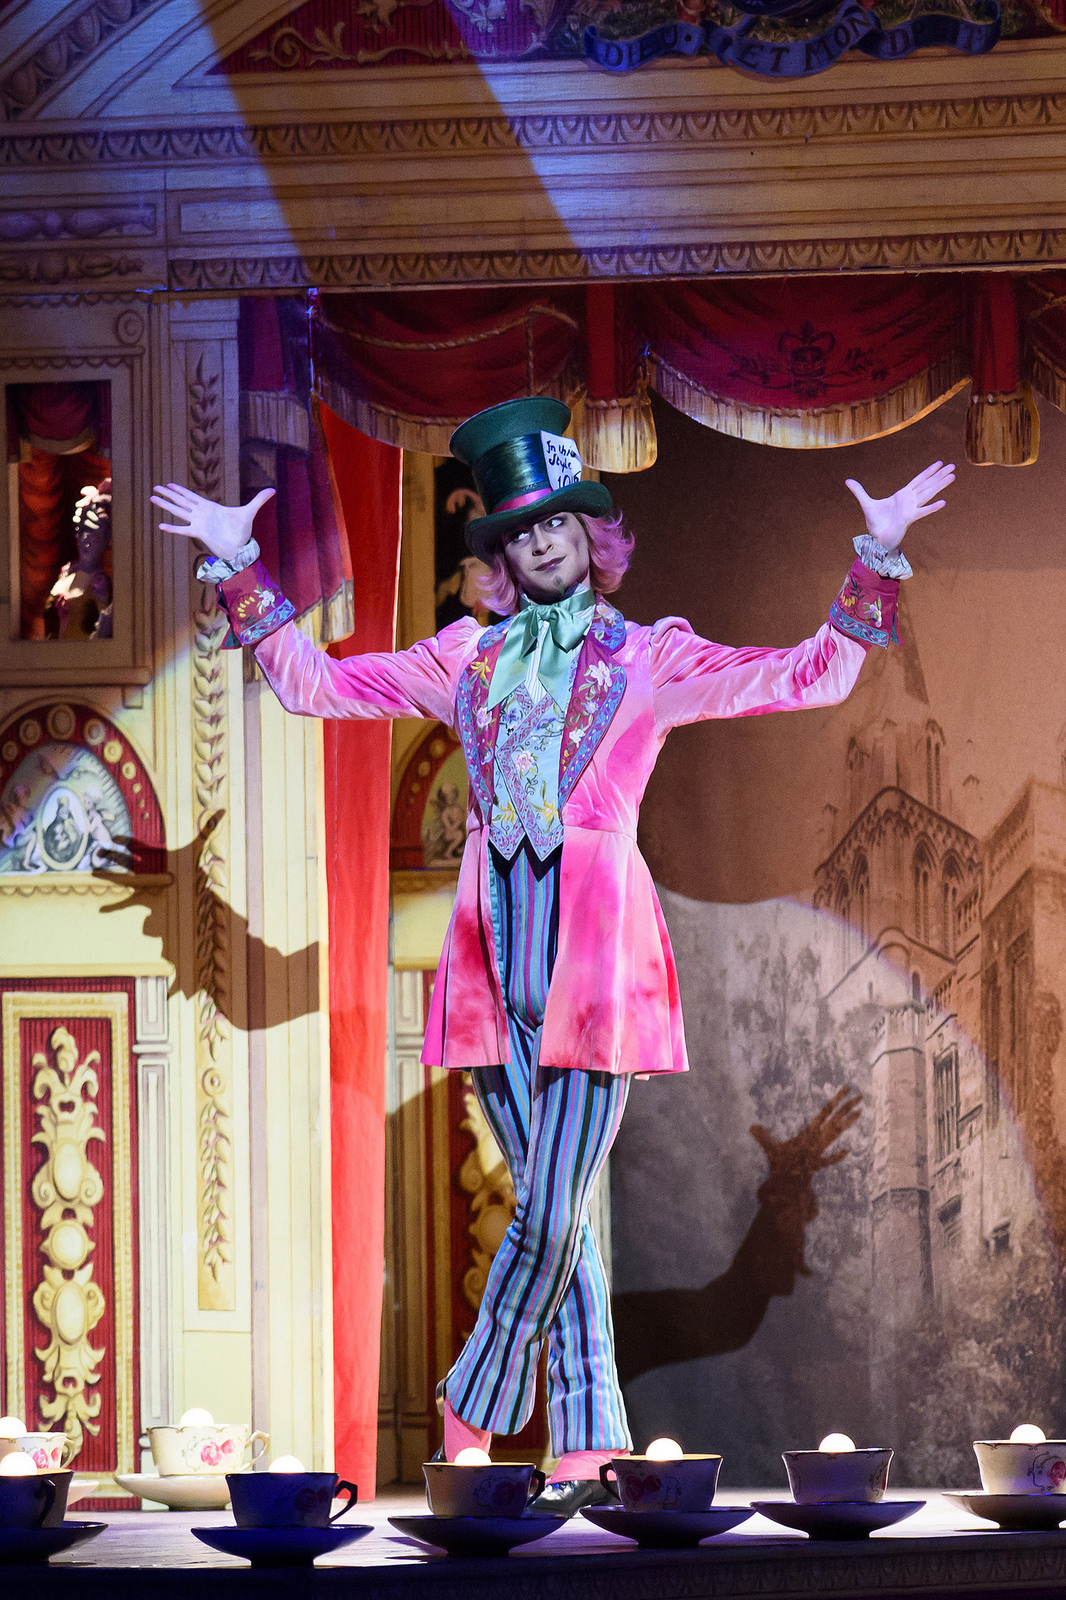 The incredible Mad Hatter!